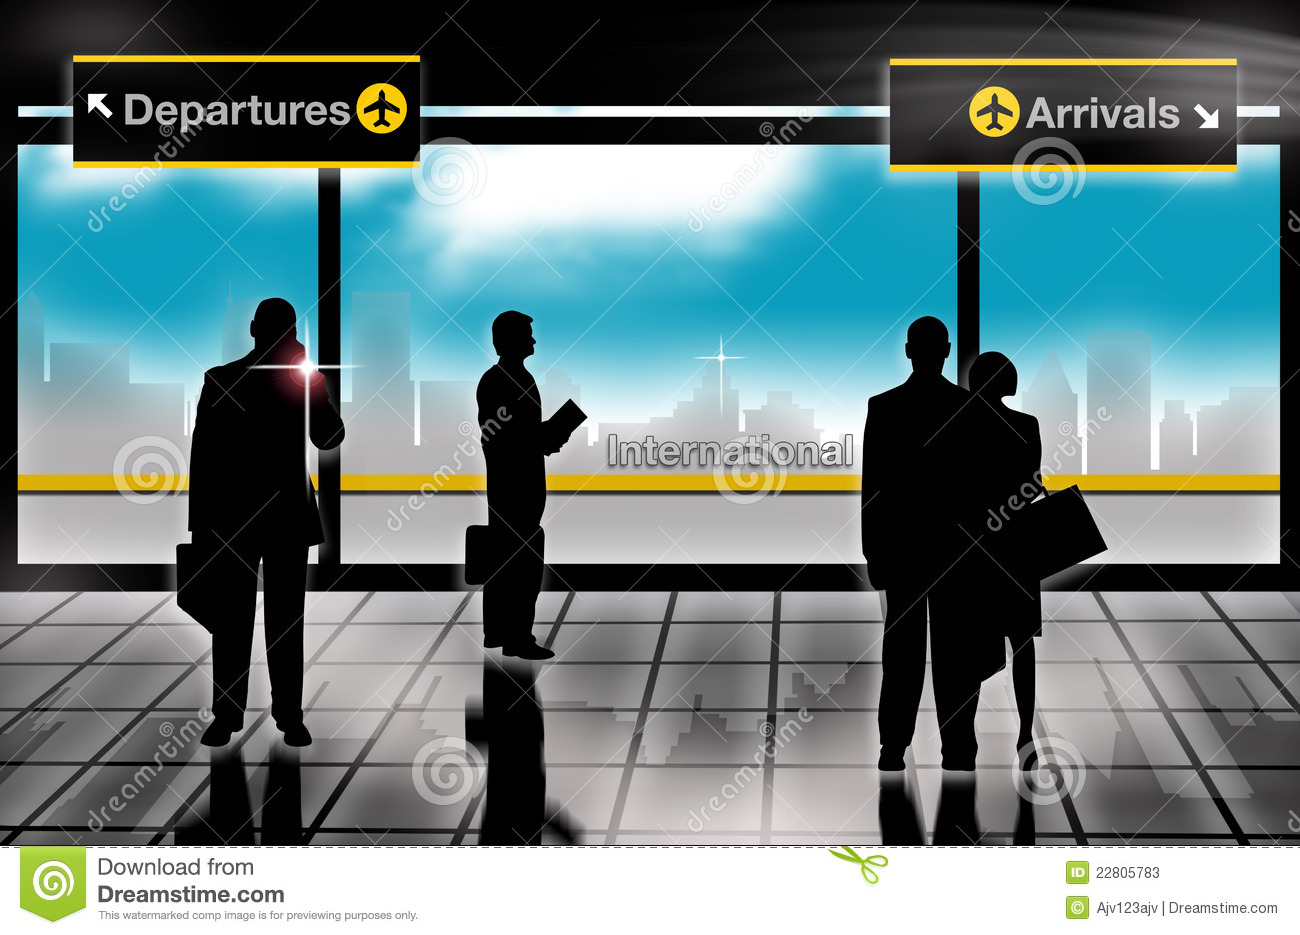 Free Images Traveling People Airport Bridge Business: Business Men Arrivals Departures Lounge Airport Stock